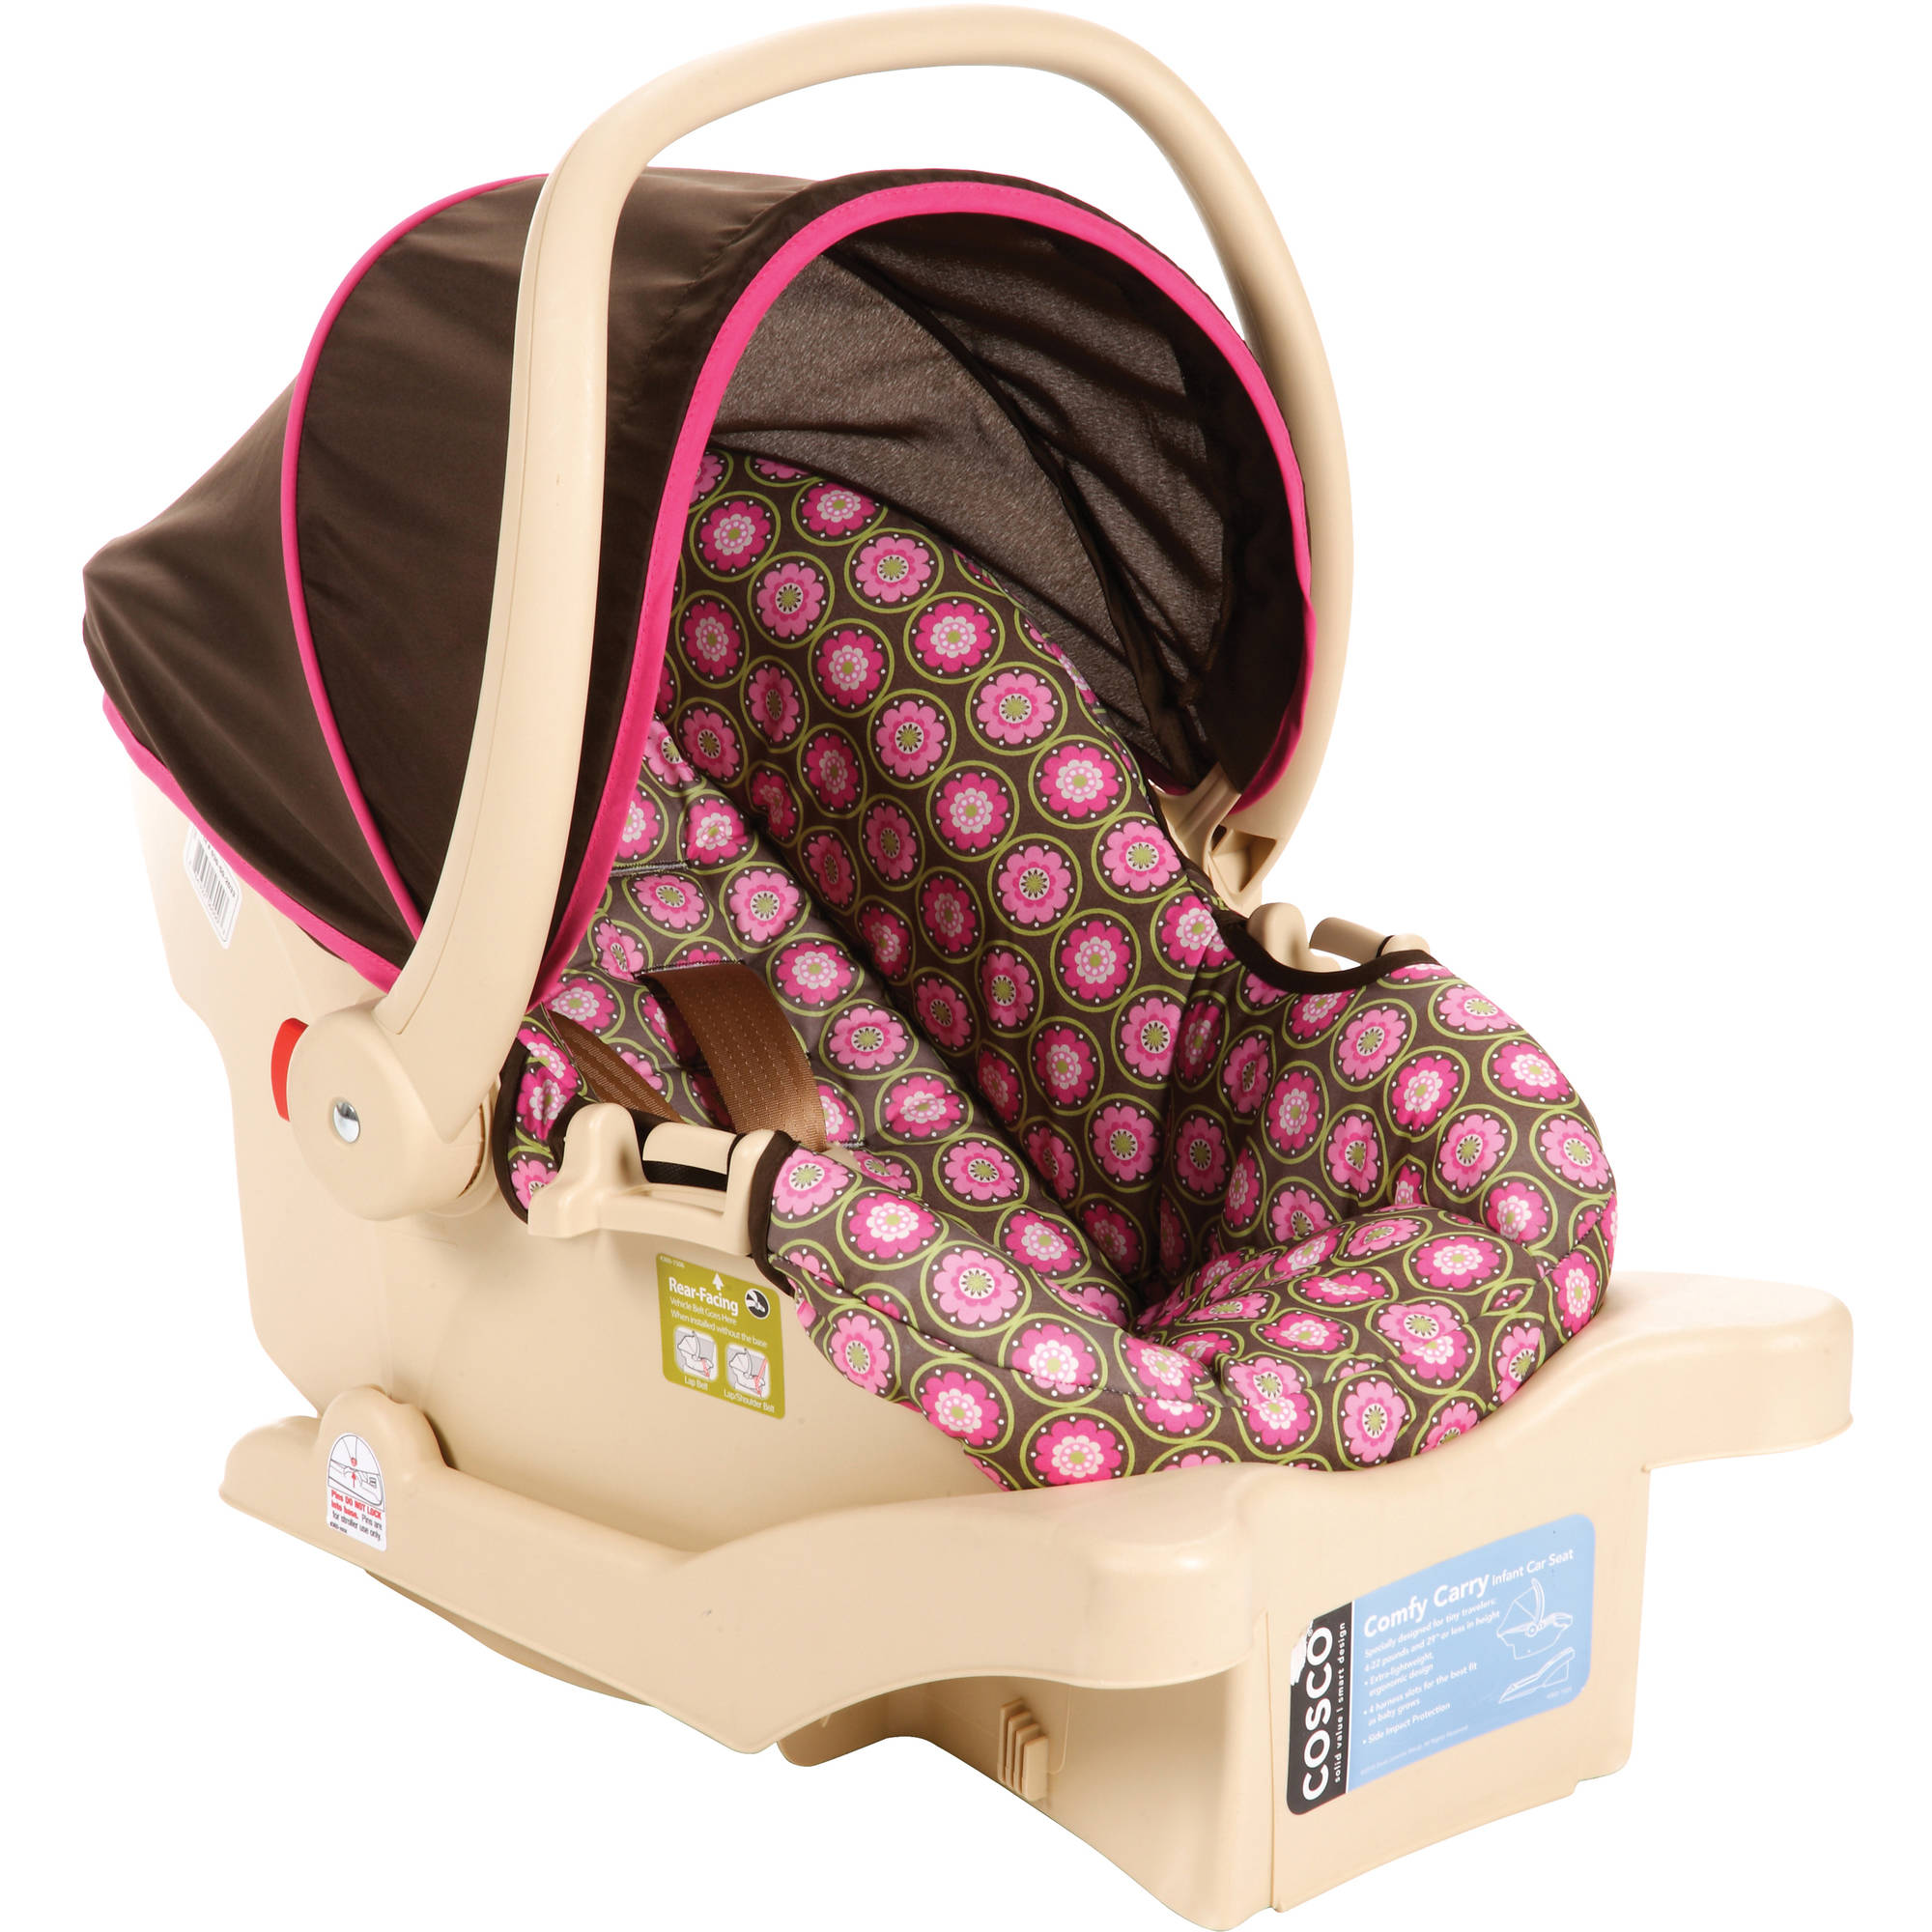 Cosco - Comfy Carry Infant Car Seat, Bloomsbury